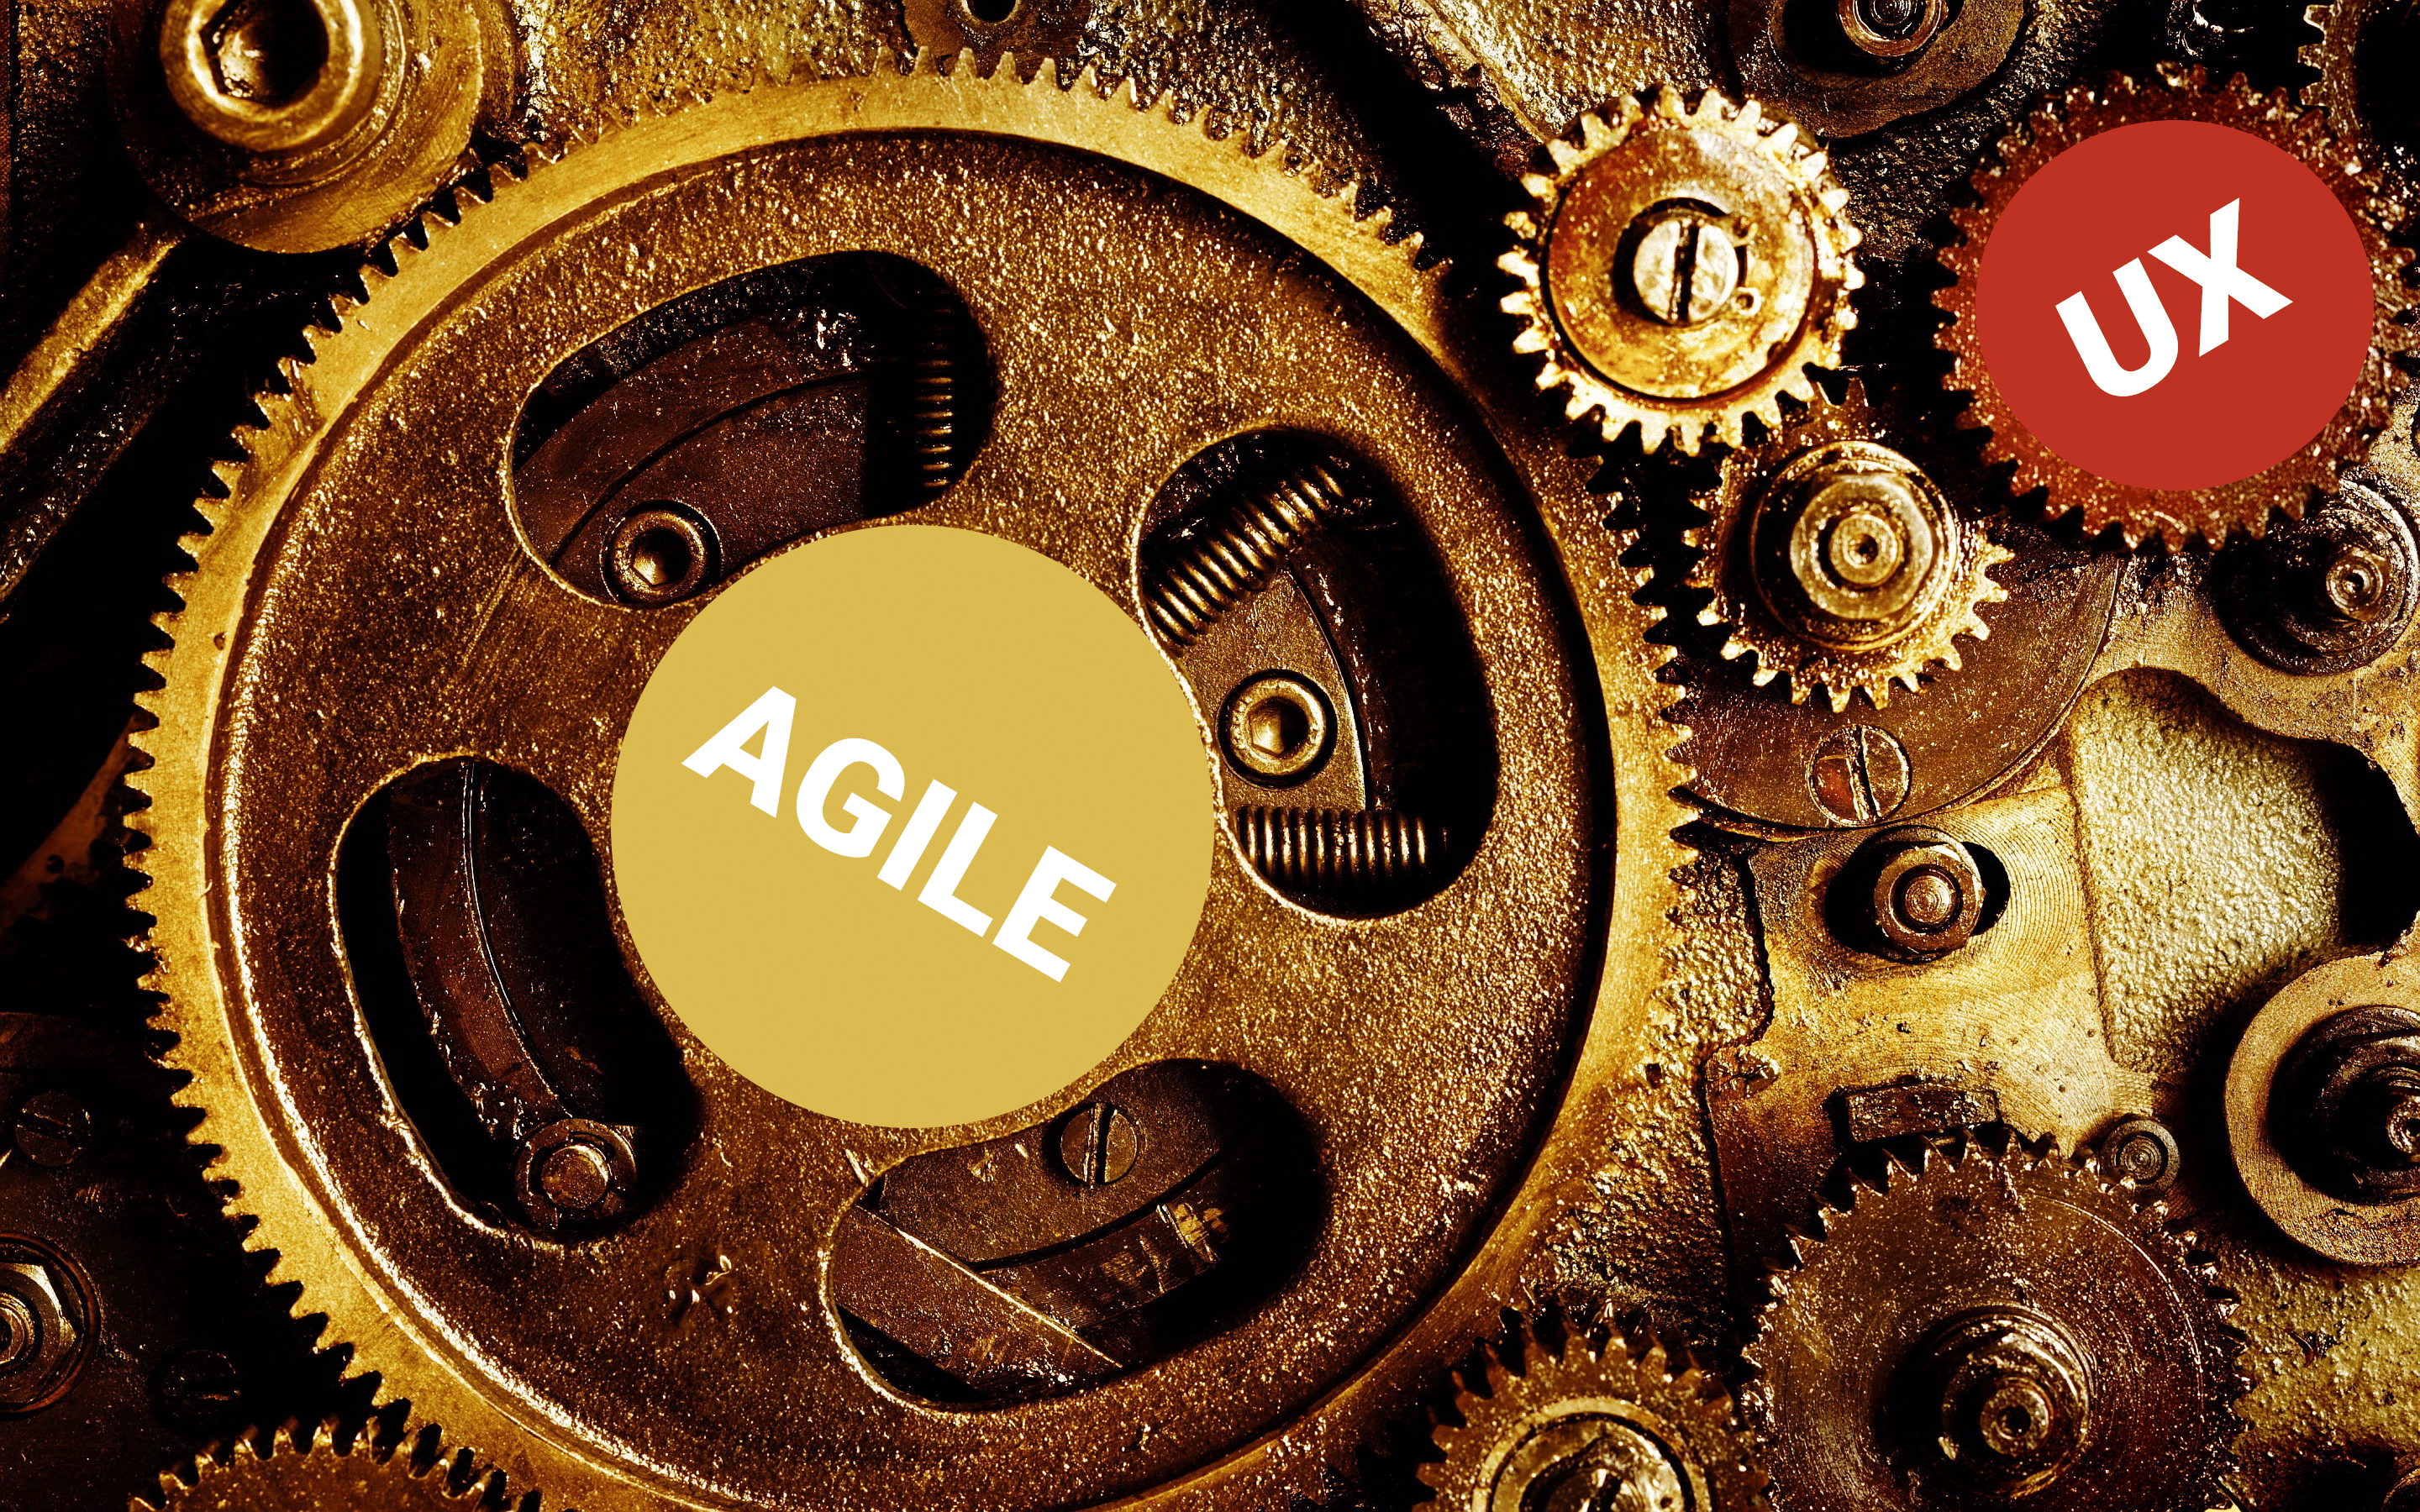 UX in an Agile Process